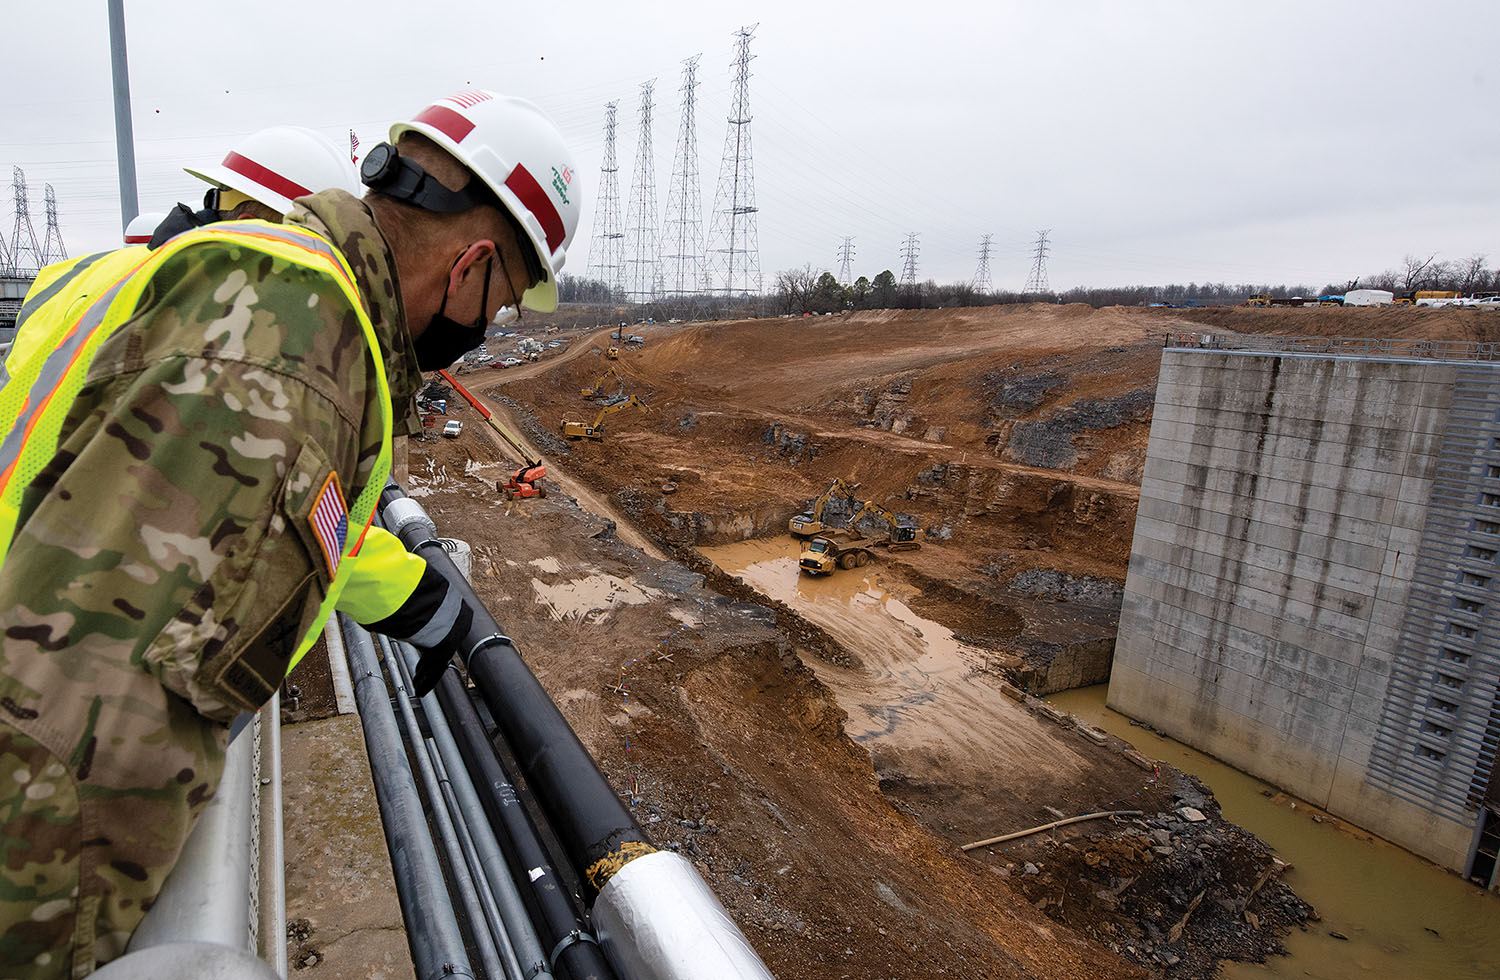 Maj. Gen. William (Butch) H. Graham, U.S. Army Corps of Engineers commanding general for civil and emergency operations, overlooks Heeter Geotechnical Construction crews excavating dirt and rock at the Kentucky Lock Addition Project December 16, 2020, where the Nashville Engineer District is constructing the new 1,200-foot navigation lock at the Tennessee Valley Authority project. (Photo by Lee Roberts/Nashville Engineer District)